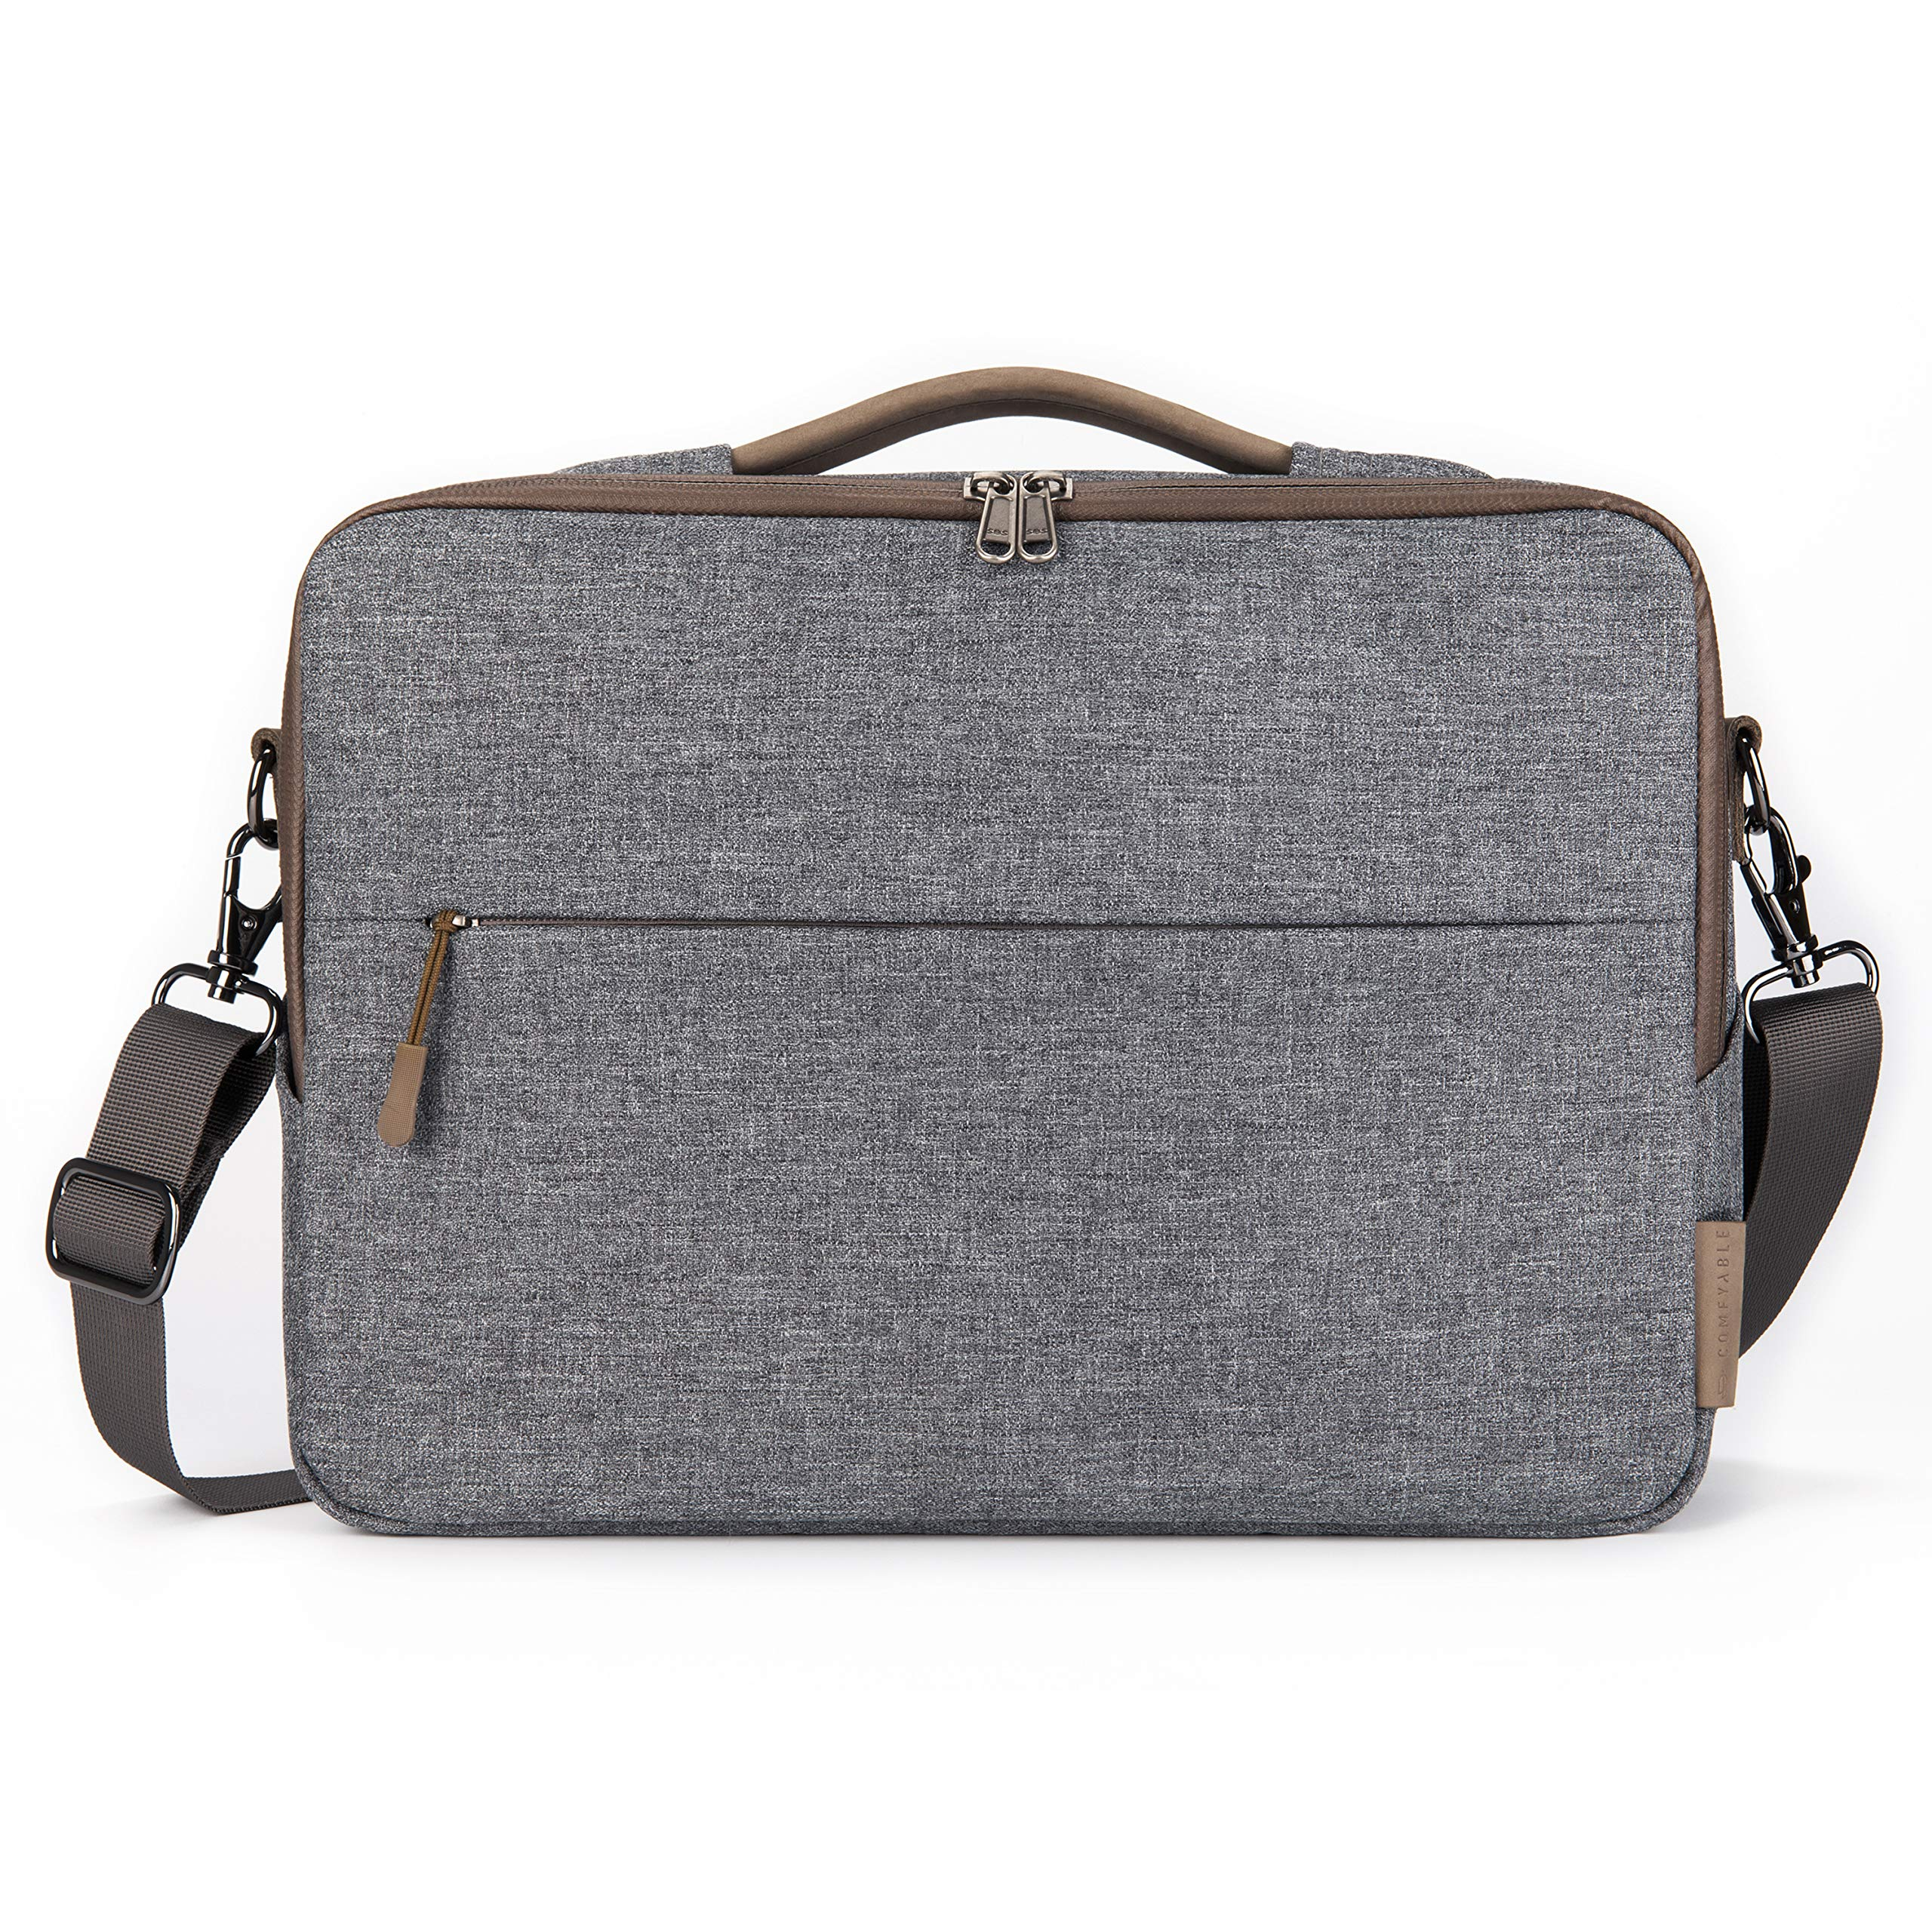 """Comfyable Laptop Bag 13 Inch, Computer Briefcase for Men with Organizer and Shoulder Strap for Travel and Business Shoulder Bag Fits 13.3"""" MacBook, Laptop, Tablet, Cool Grey by Comfyable (Image #1)"""